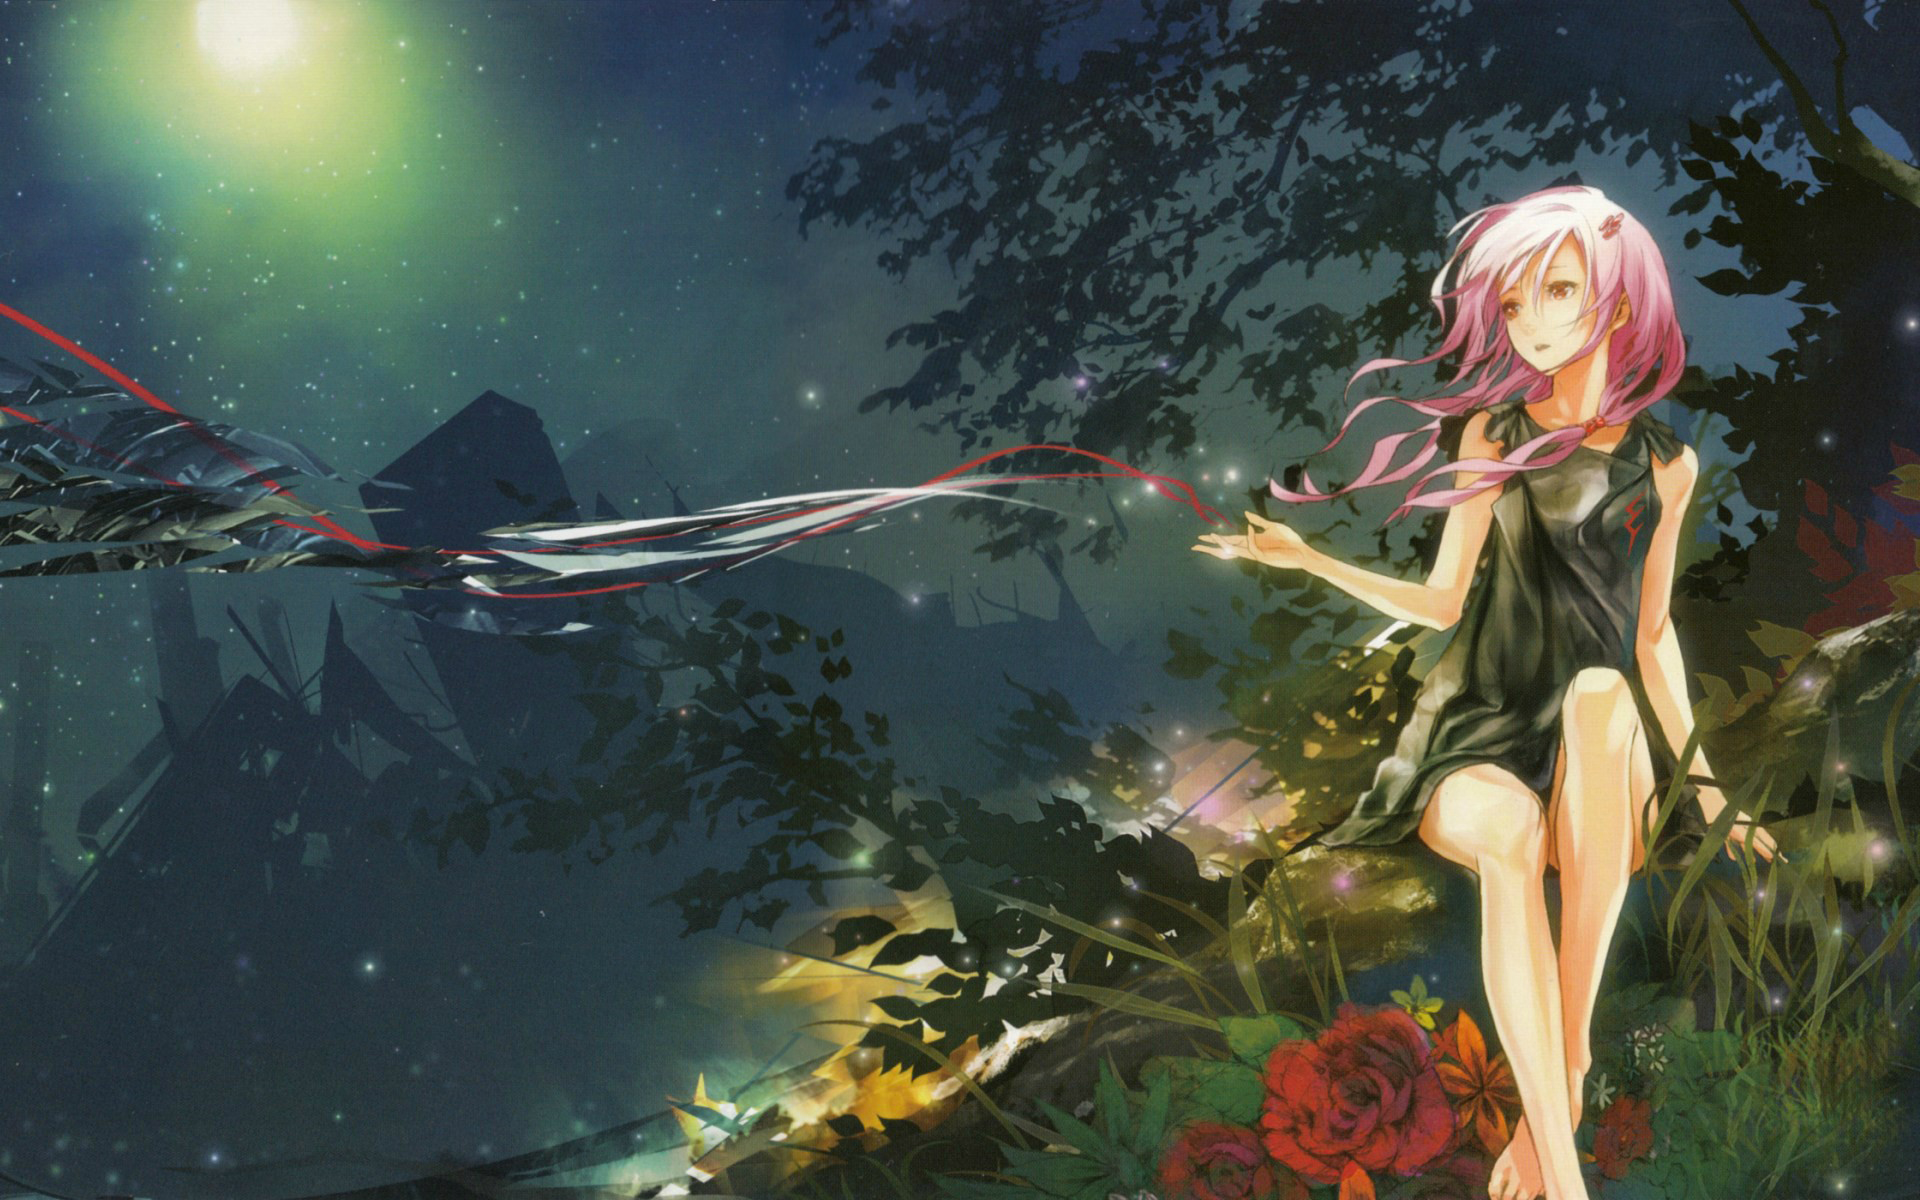 Anime Wallpaper Desktop Background 10 152 Examples For Your